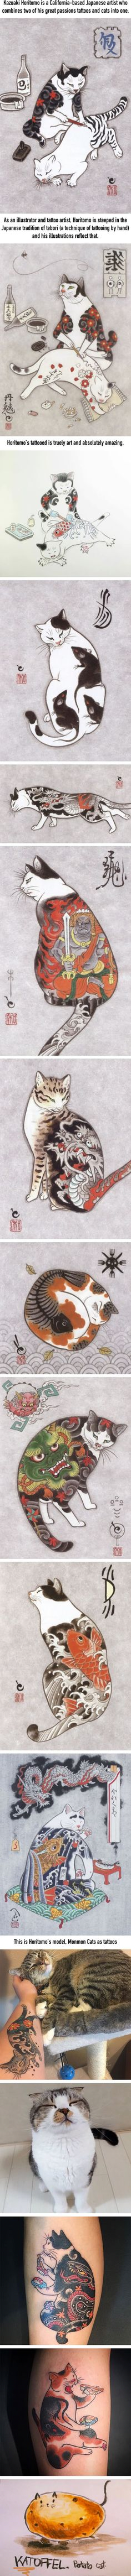 Cats Tattooing Each Other In Surreal Japanese Ink Wash Paintings by Kazuaki Horitomo